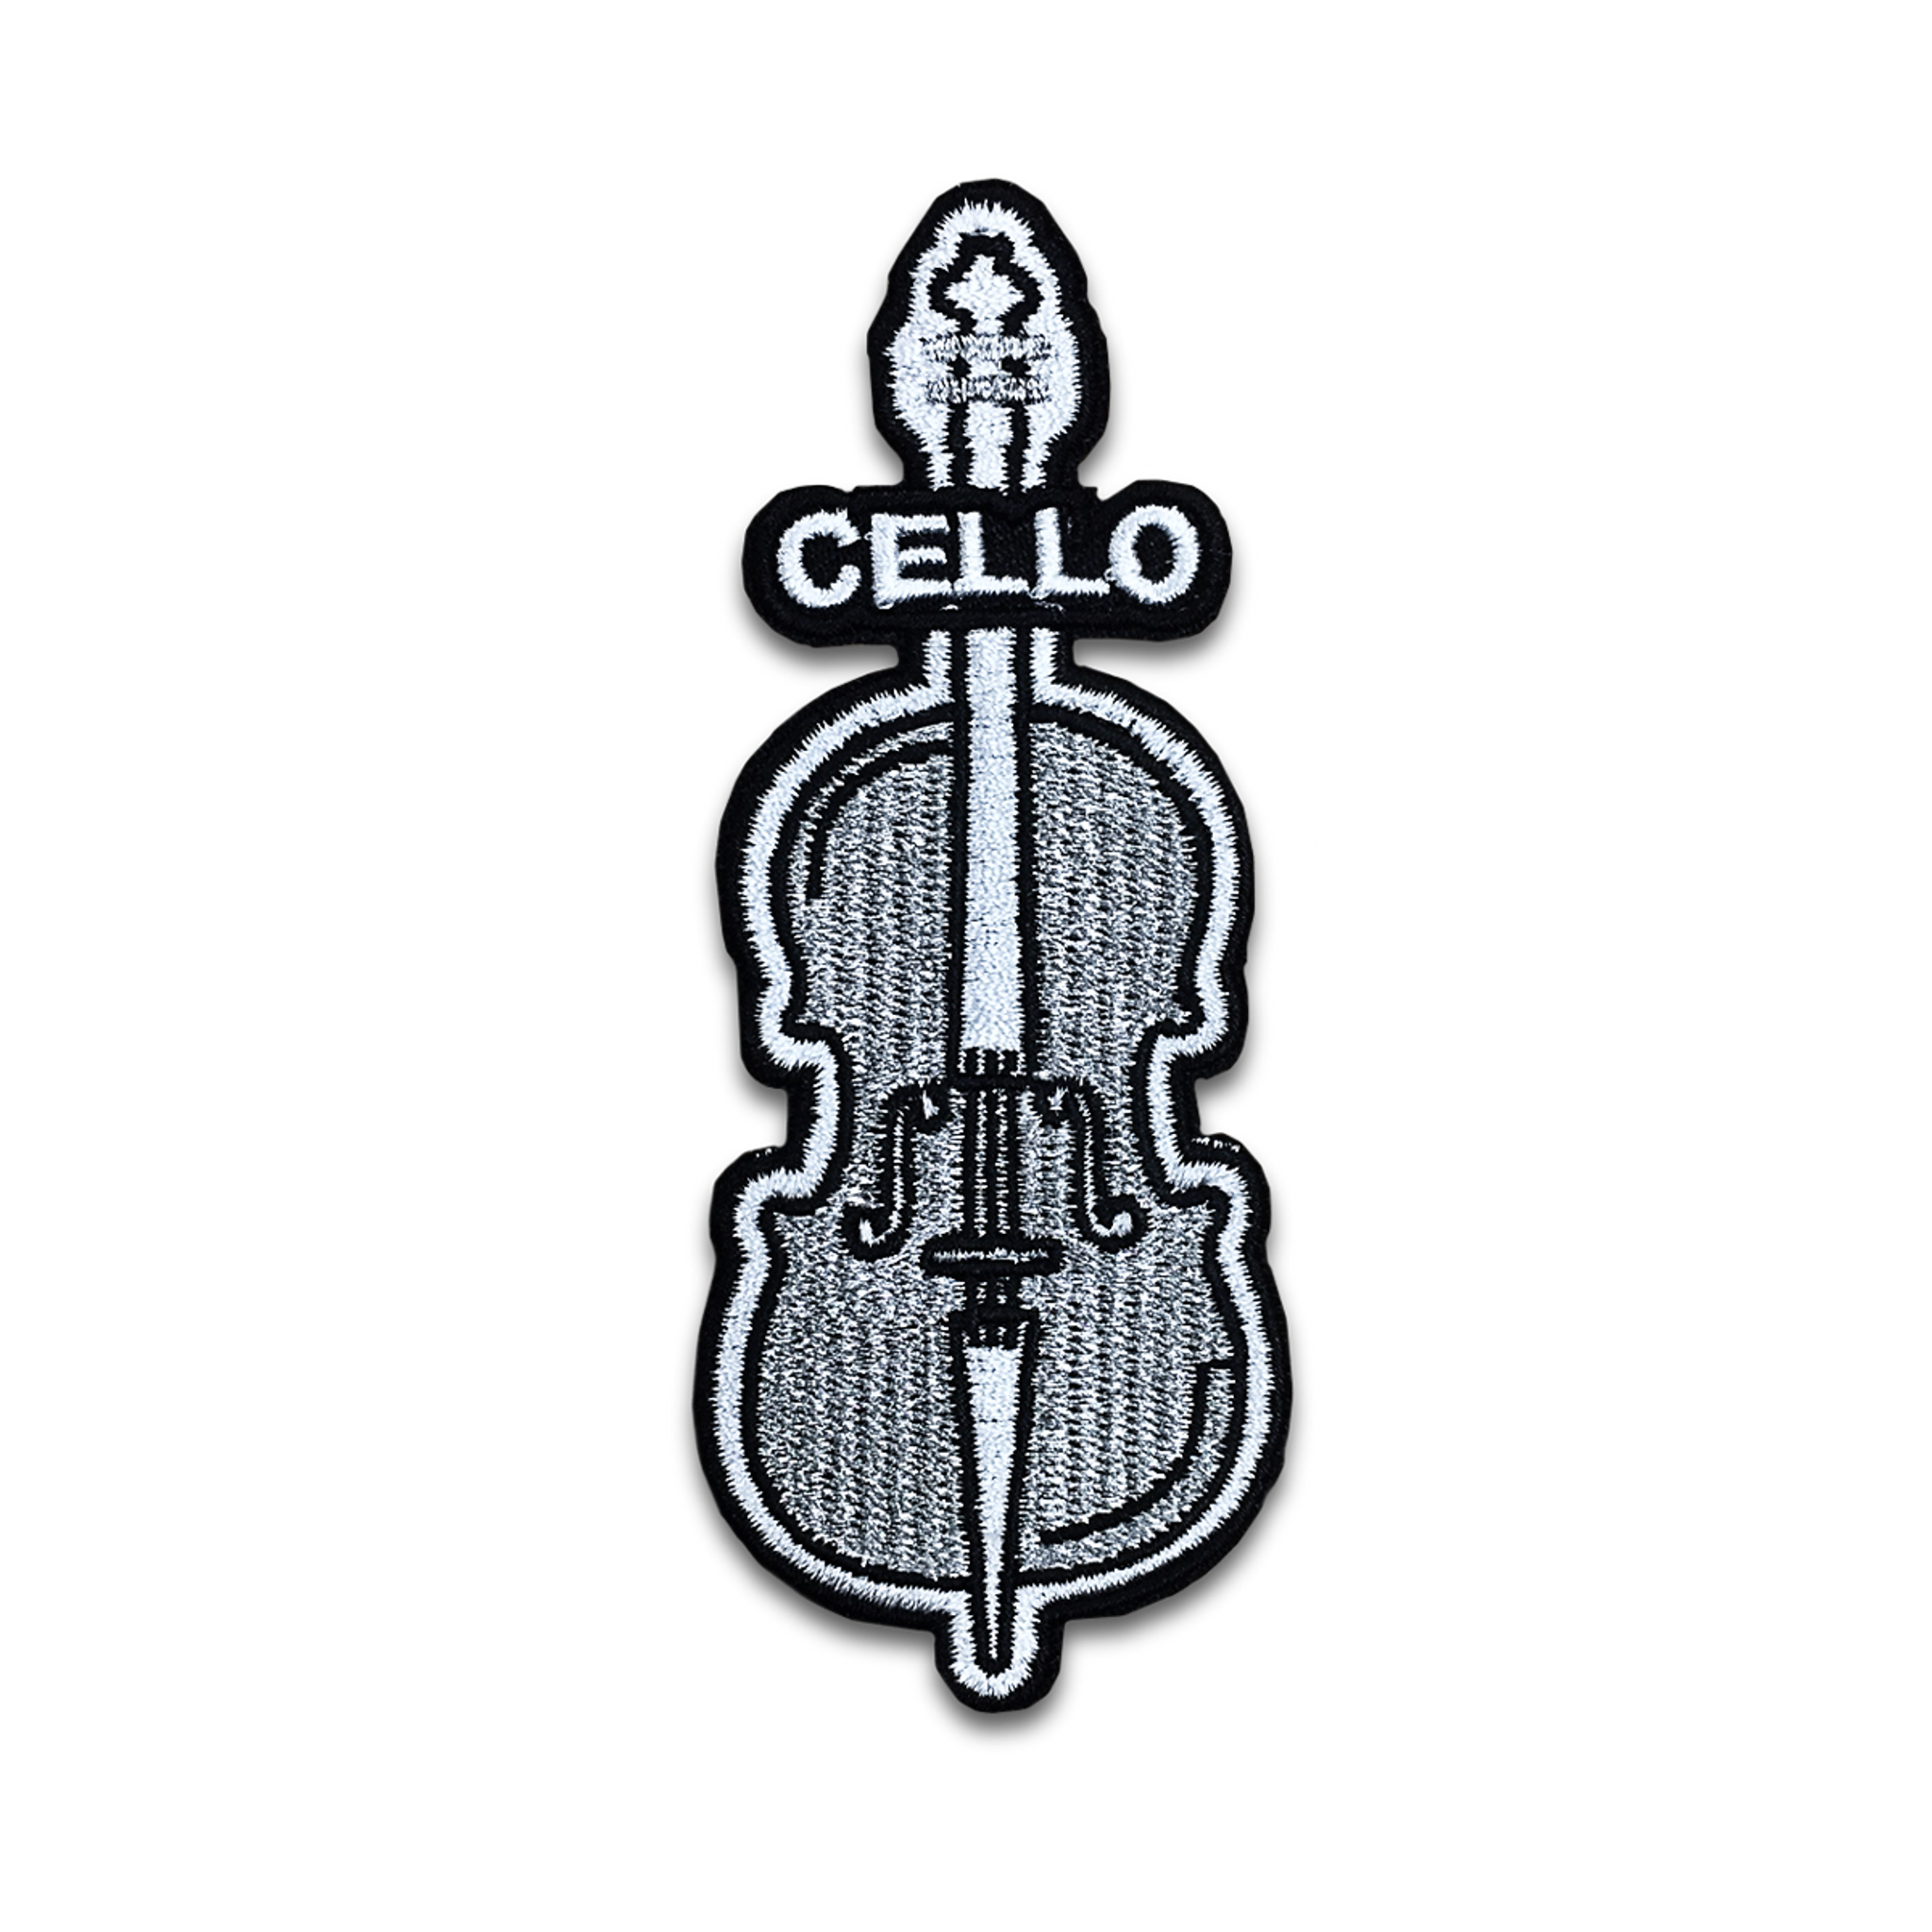 Cello Orch Instrument Patch